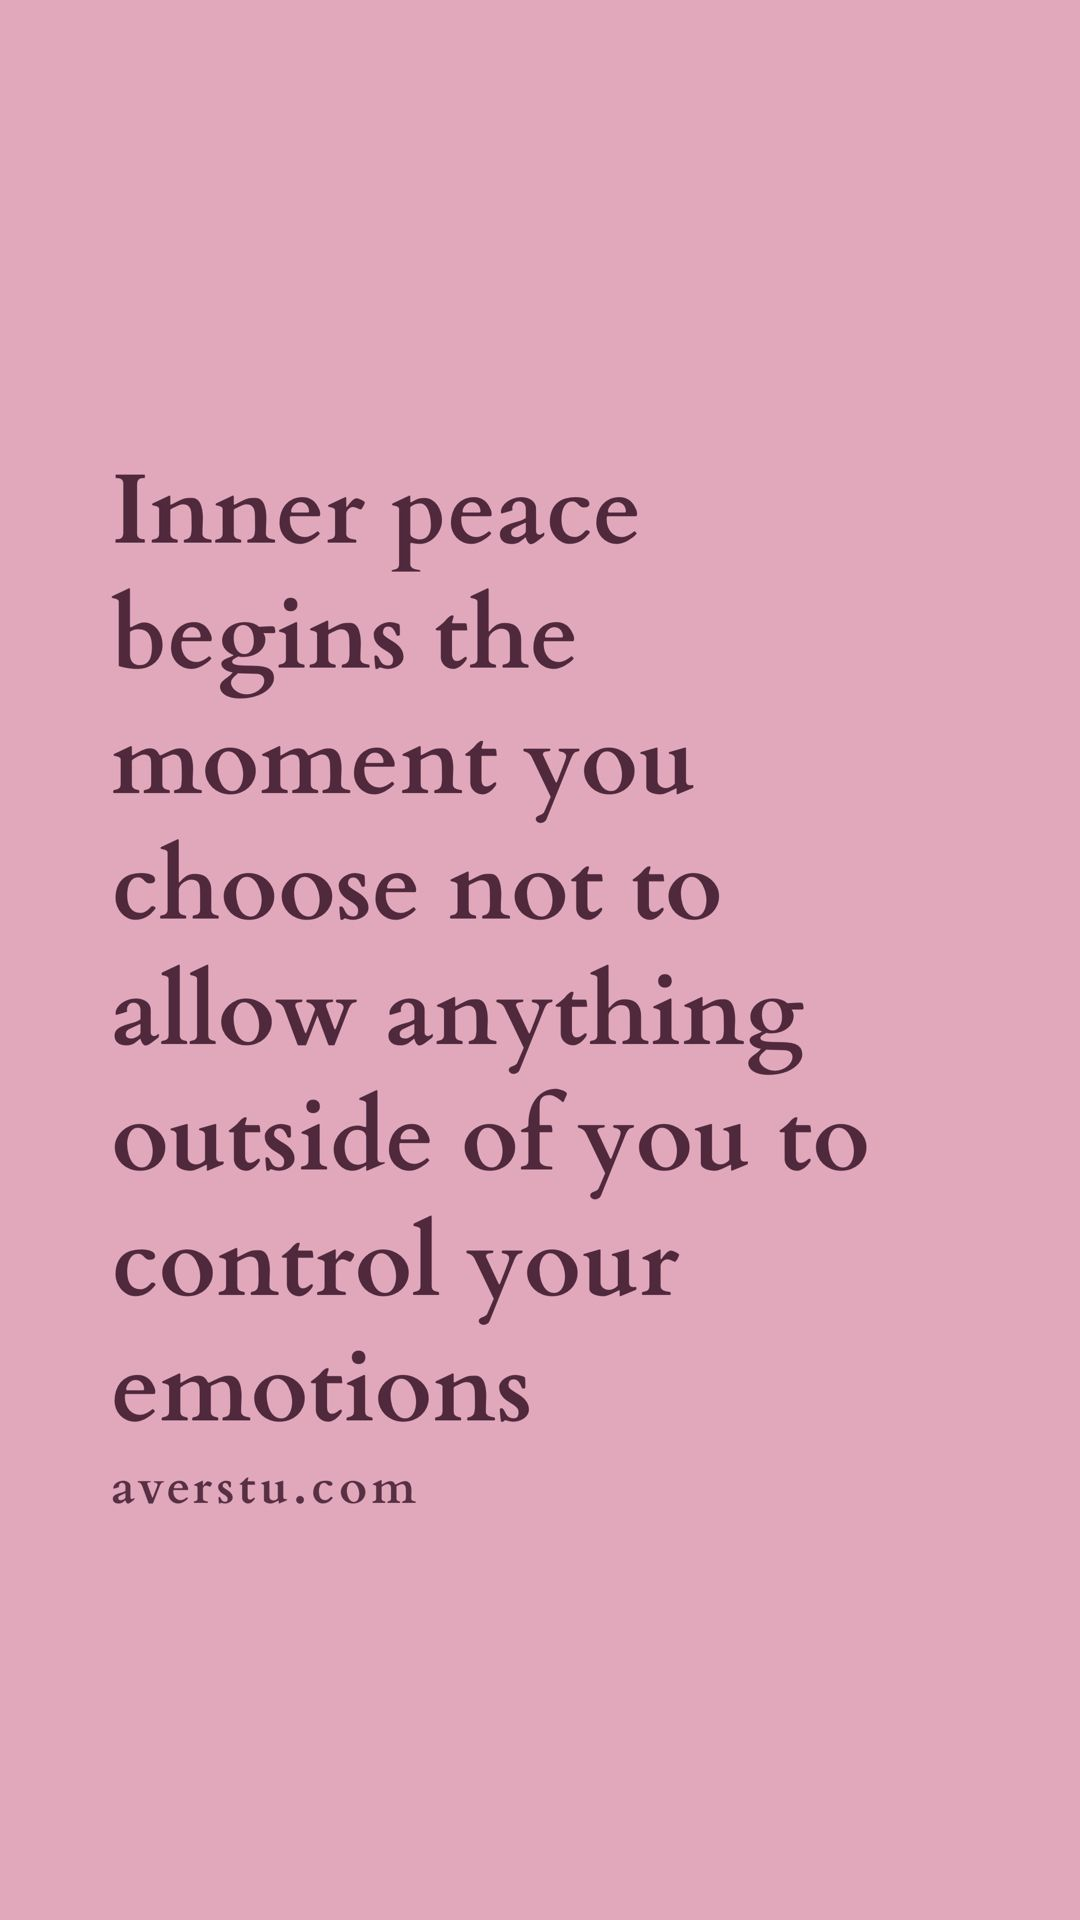 inner peace begins the moment you choose not to allow anything outside of you to control your emotions.